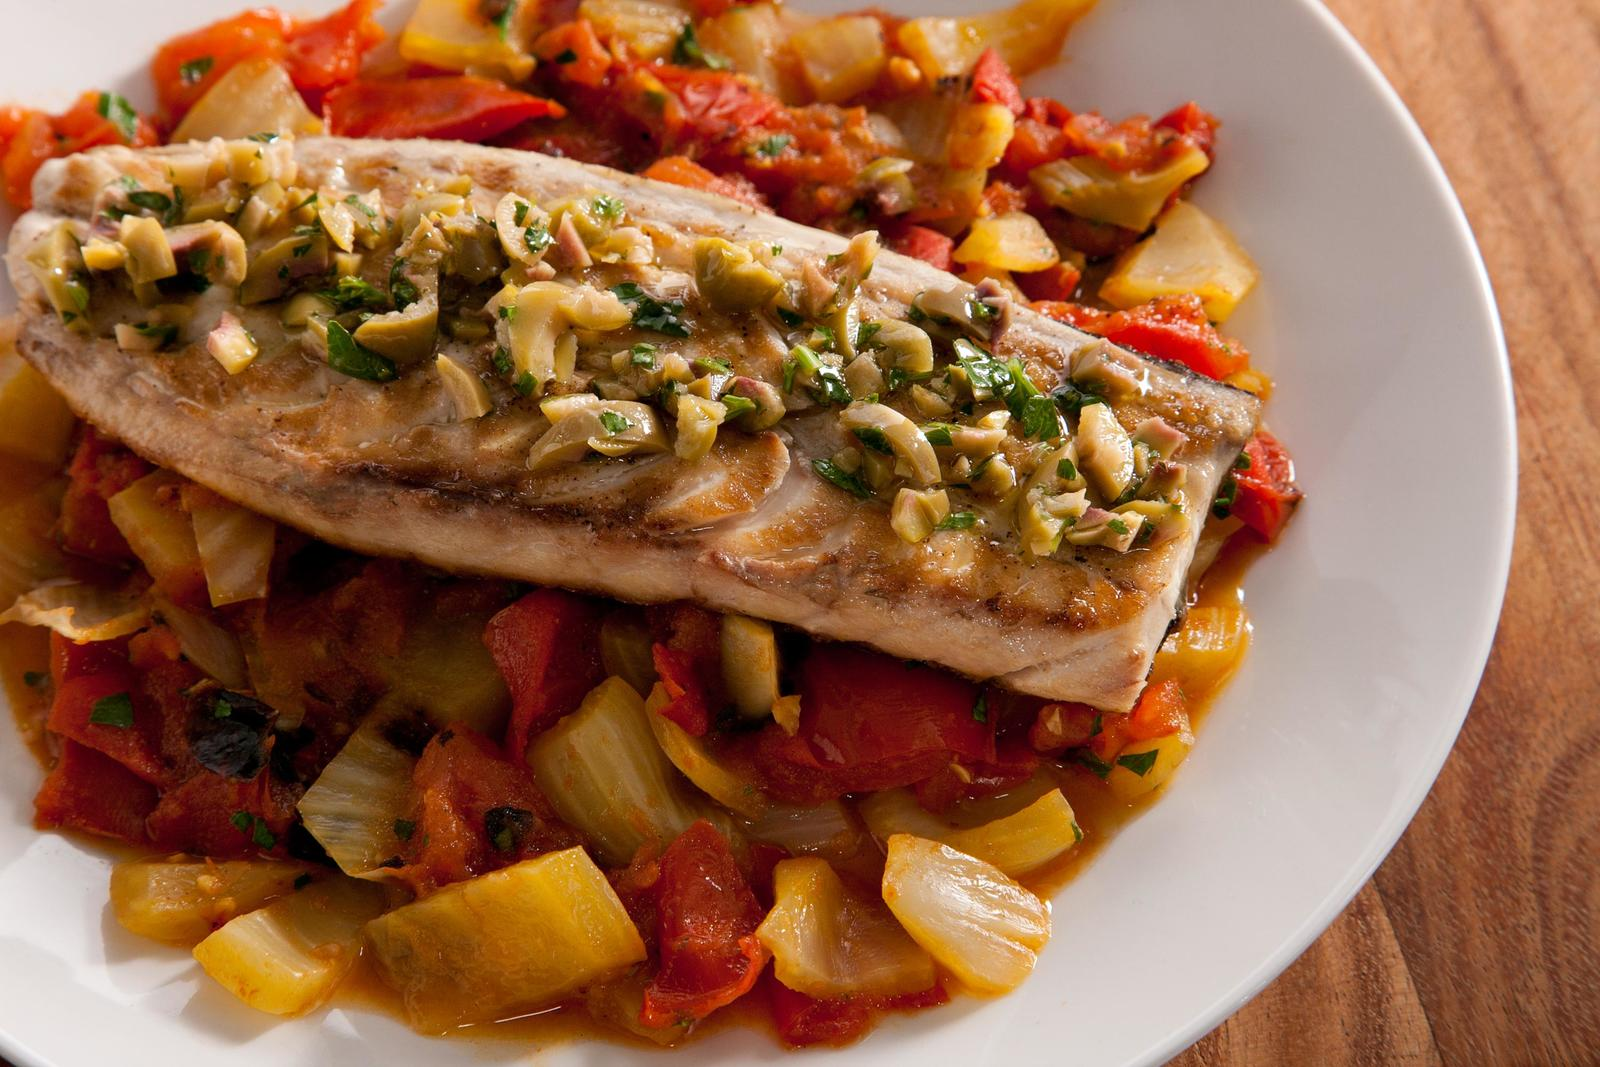 15. Grilled Mackerel with Tomato, Fennel and Capers